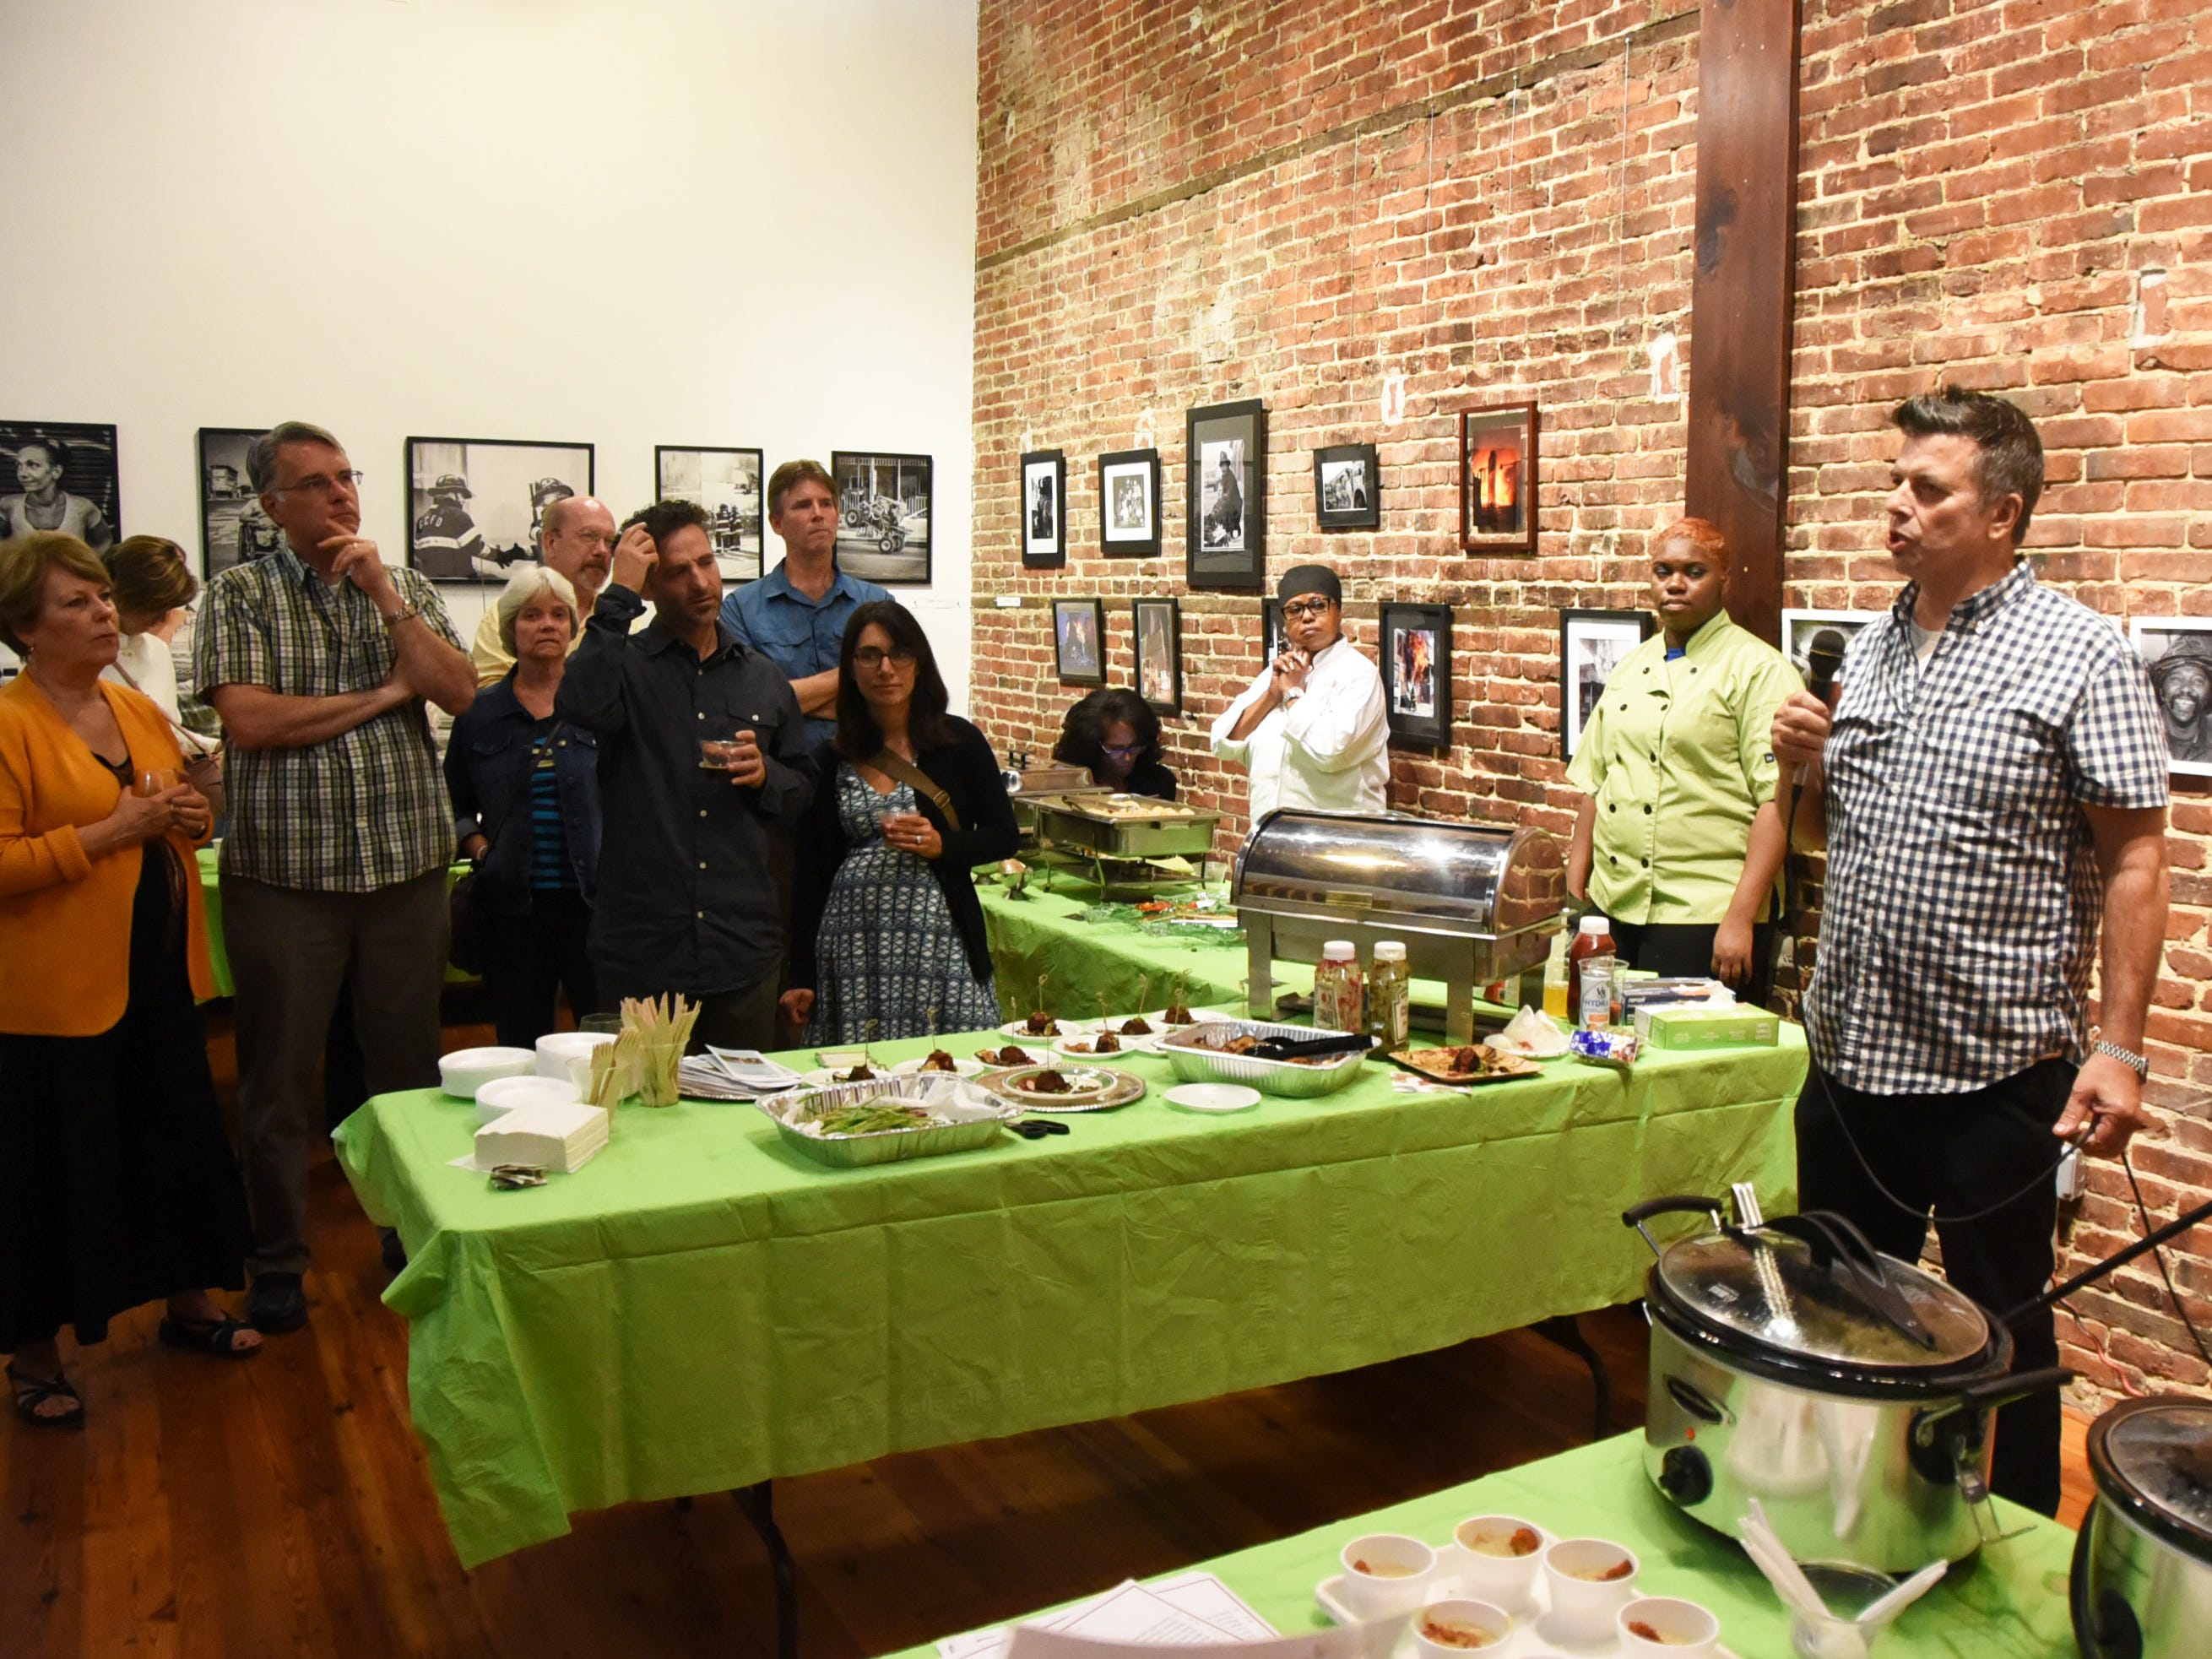 Chef Todd Fuller of the Farm & Fisherman Tavern in Cherry Hill, right, speaks during the #WasteNot for CFET event at the FireWorks Gallery in South Camden on Saturday, September 29, 2018.  The Courier-Post partnered with the Farm & Fisherman Tavern in Cherry Hill and other community organizations to hold the event that offered a special tasting, farm tour and community conversation about reducing food waste.